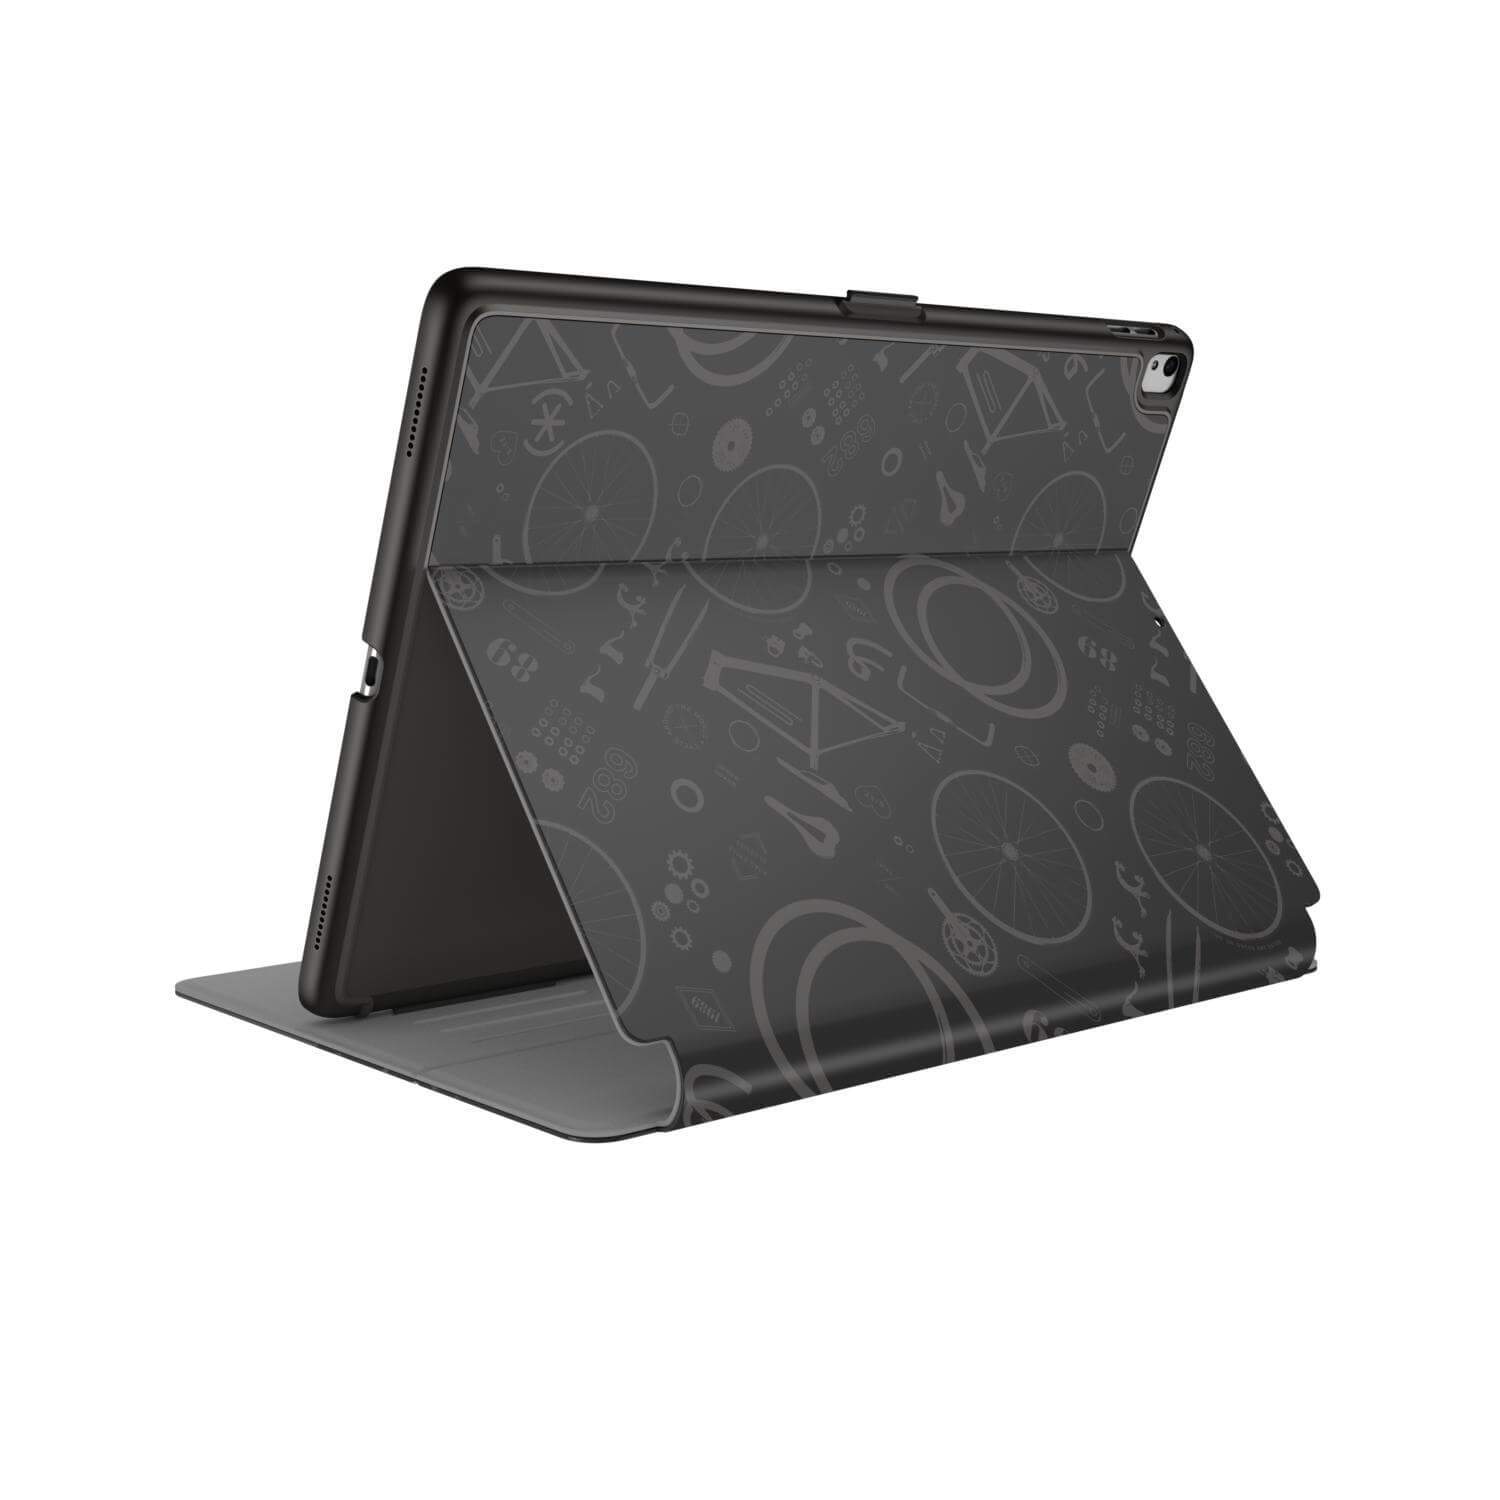 Compare prices for Speck Balance FOLIO PRINT iPad 2017 9.7 inch iPad Pro iPad Air 2 and iPad Air Cases BikeParts Black/Ash Grey